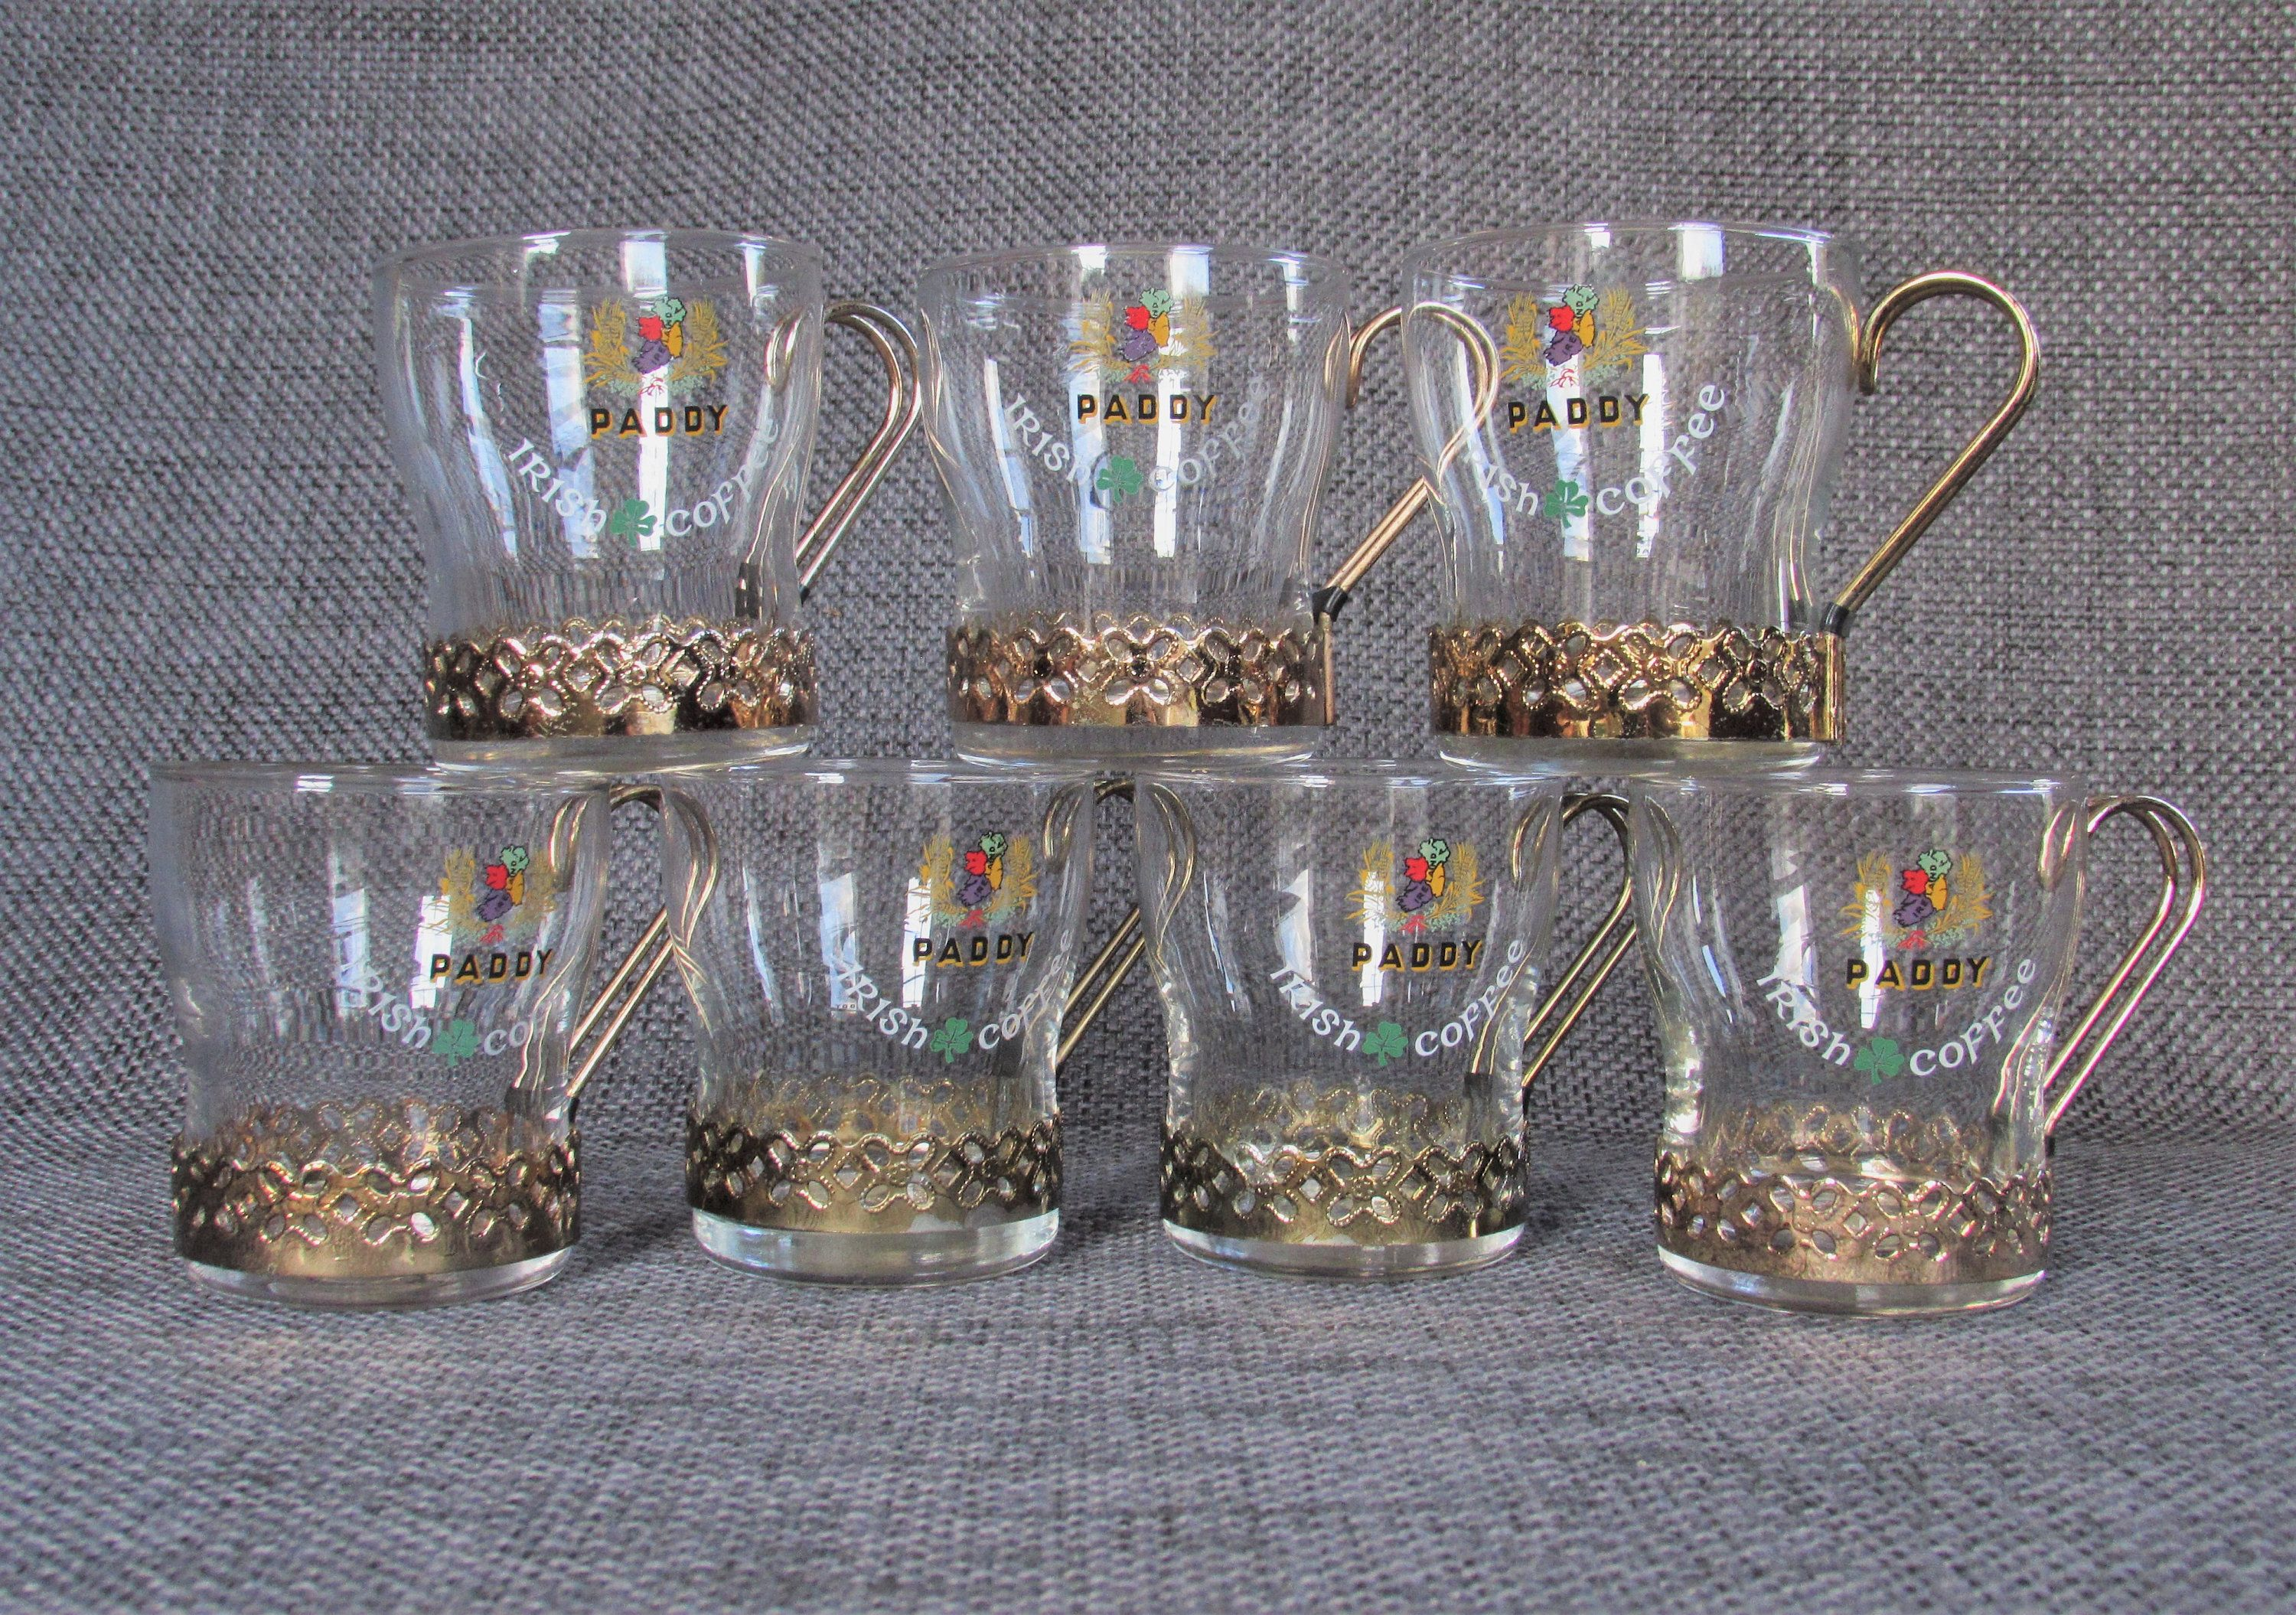 1970s Set of 7 Paddy Irish Coffee glasses with holders